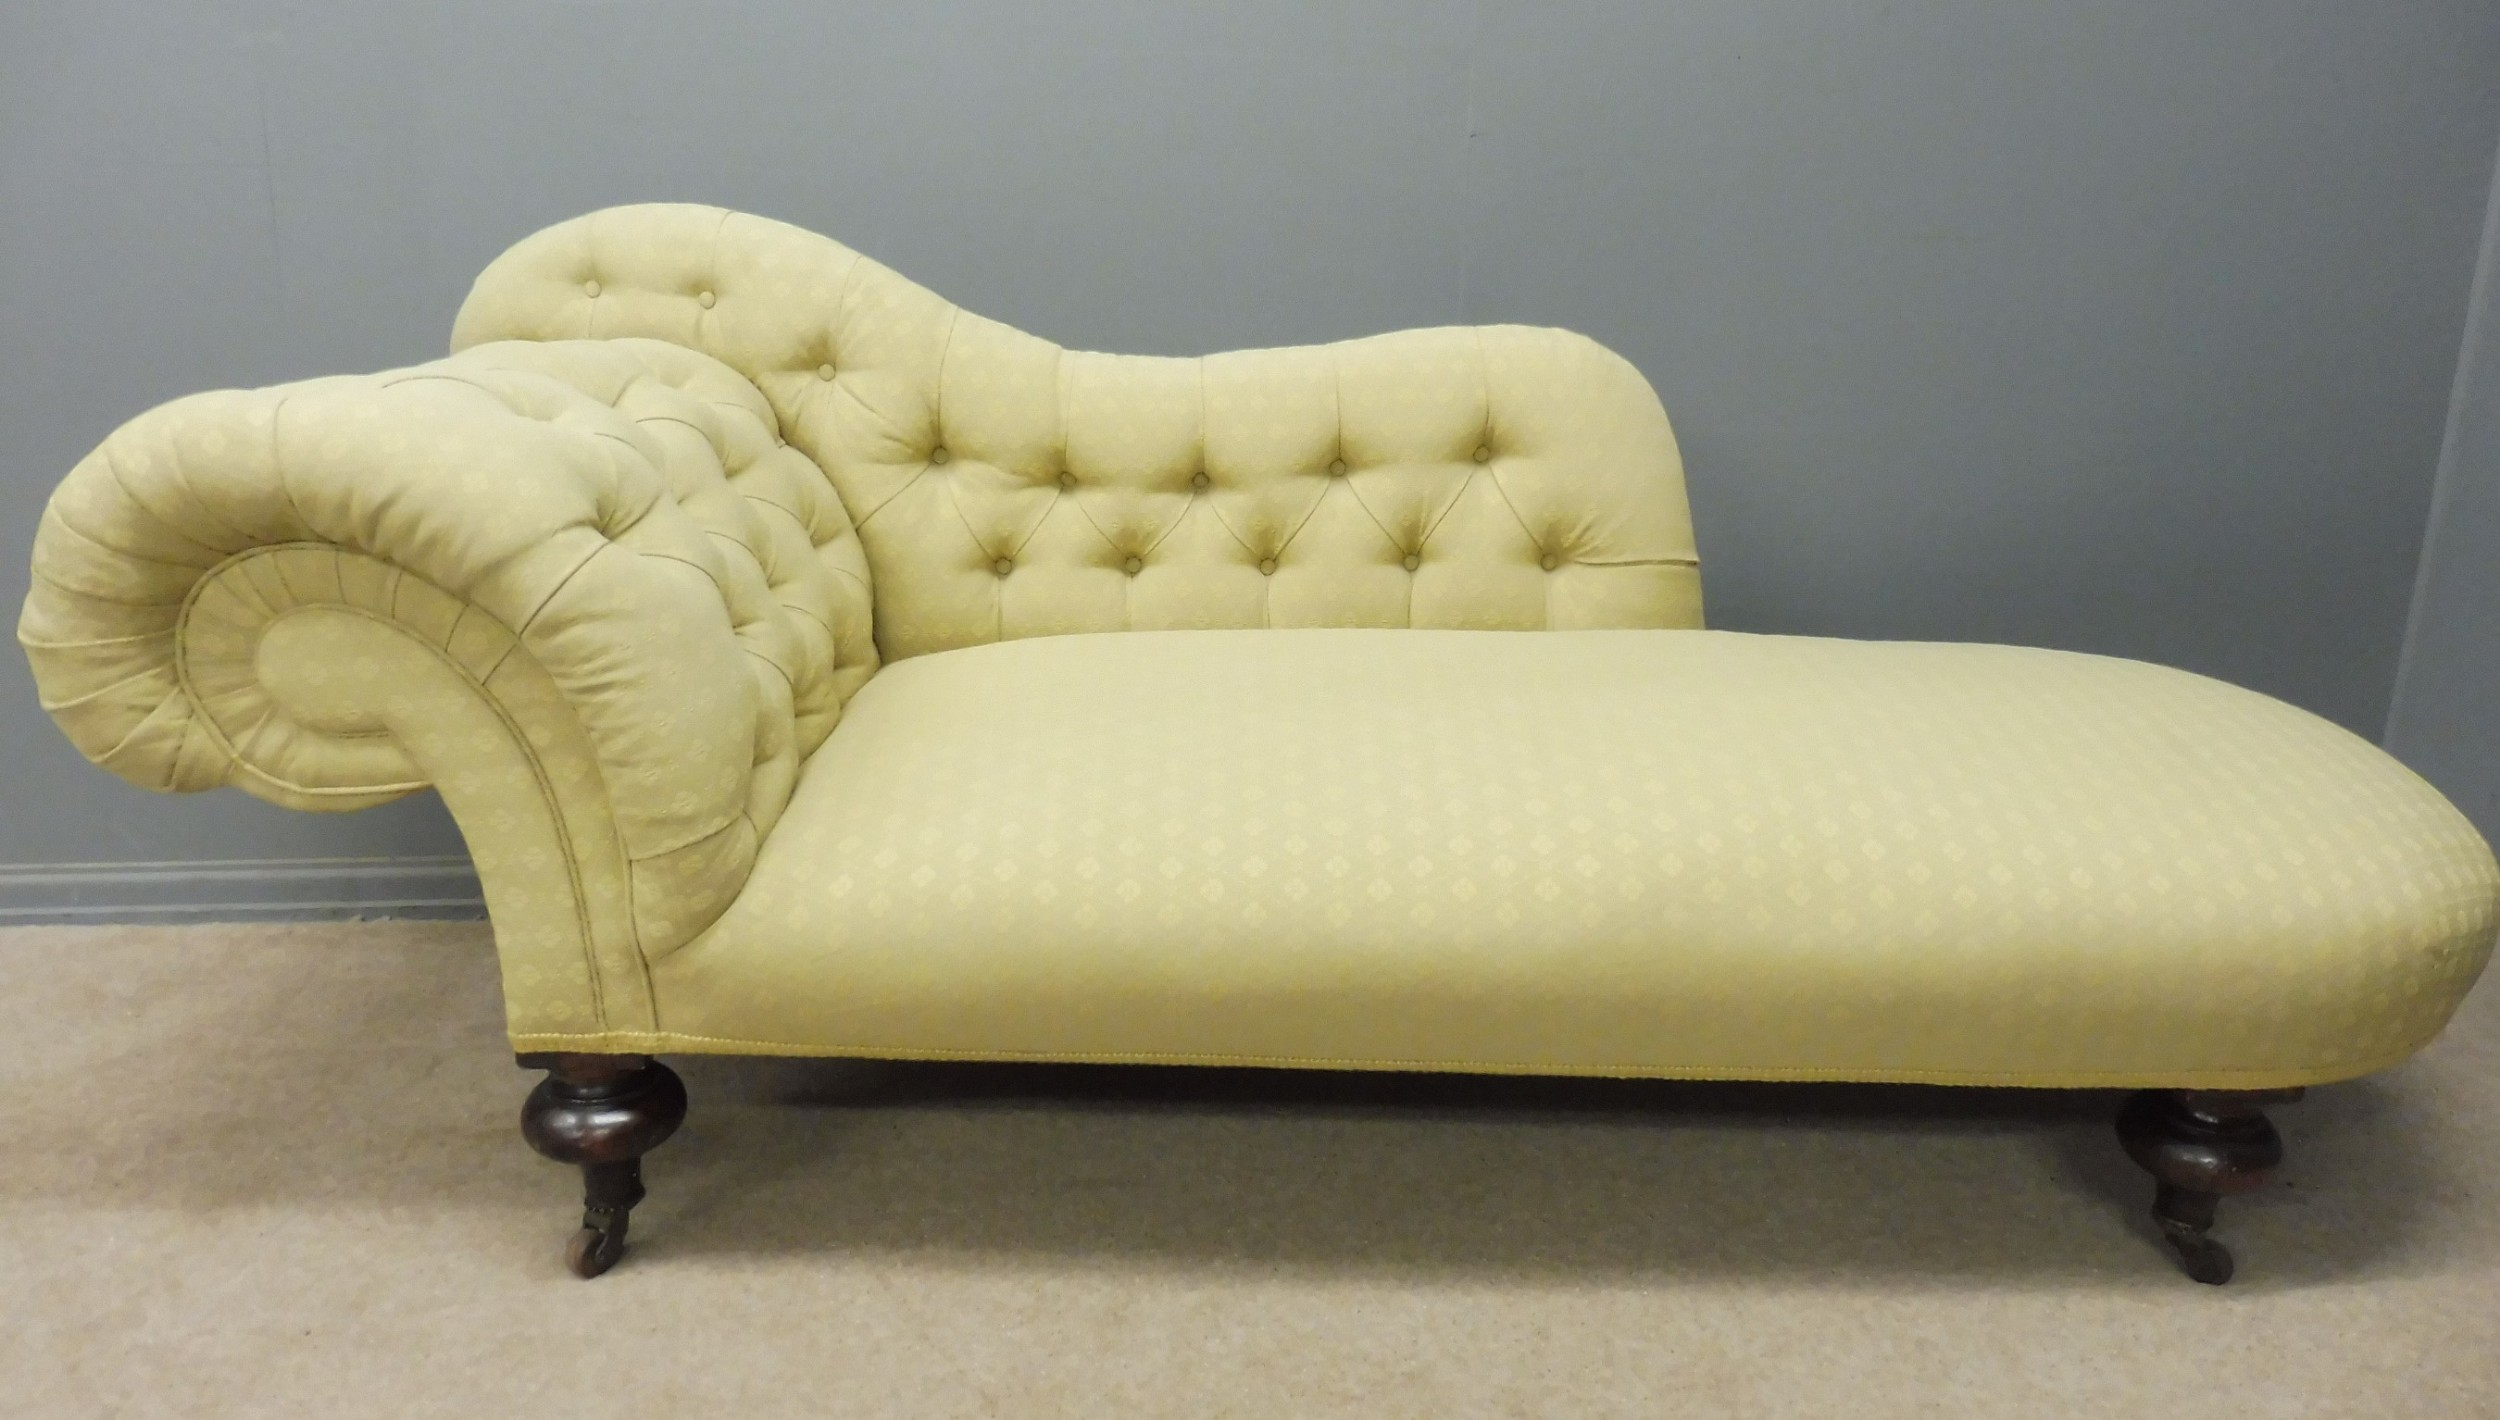 victorian chaise longue sumptuously upholstered in pale yellow